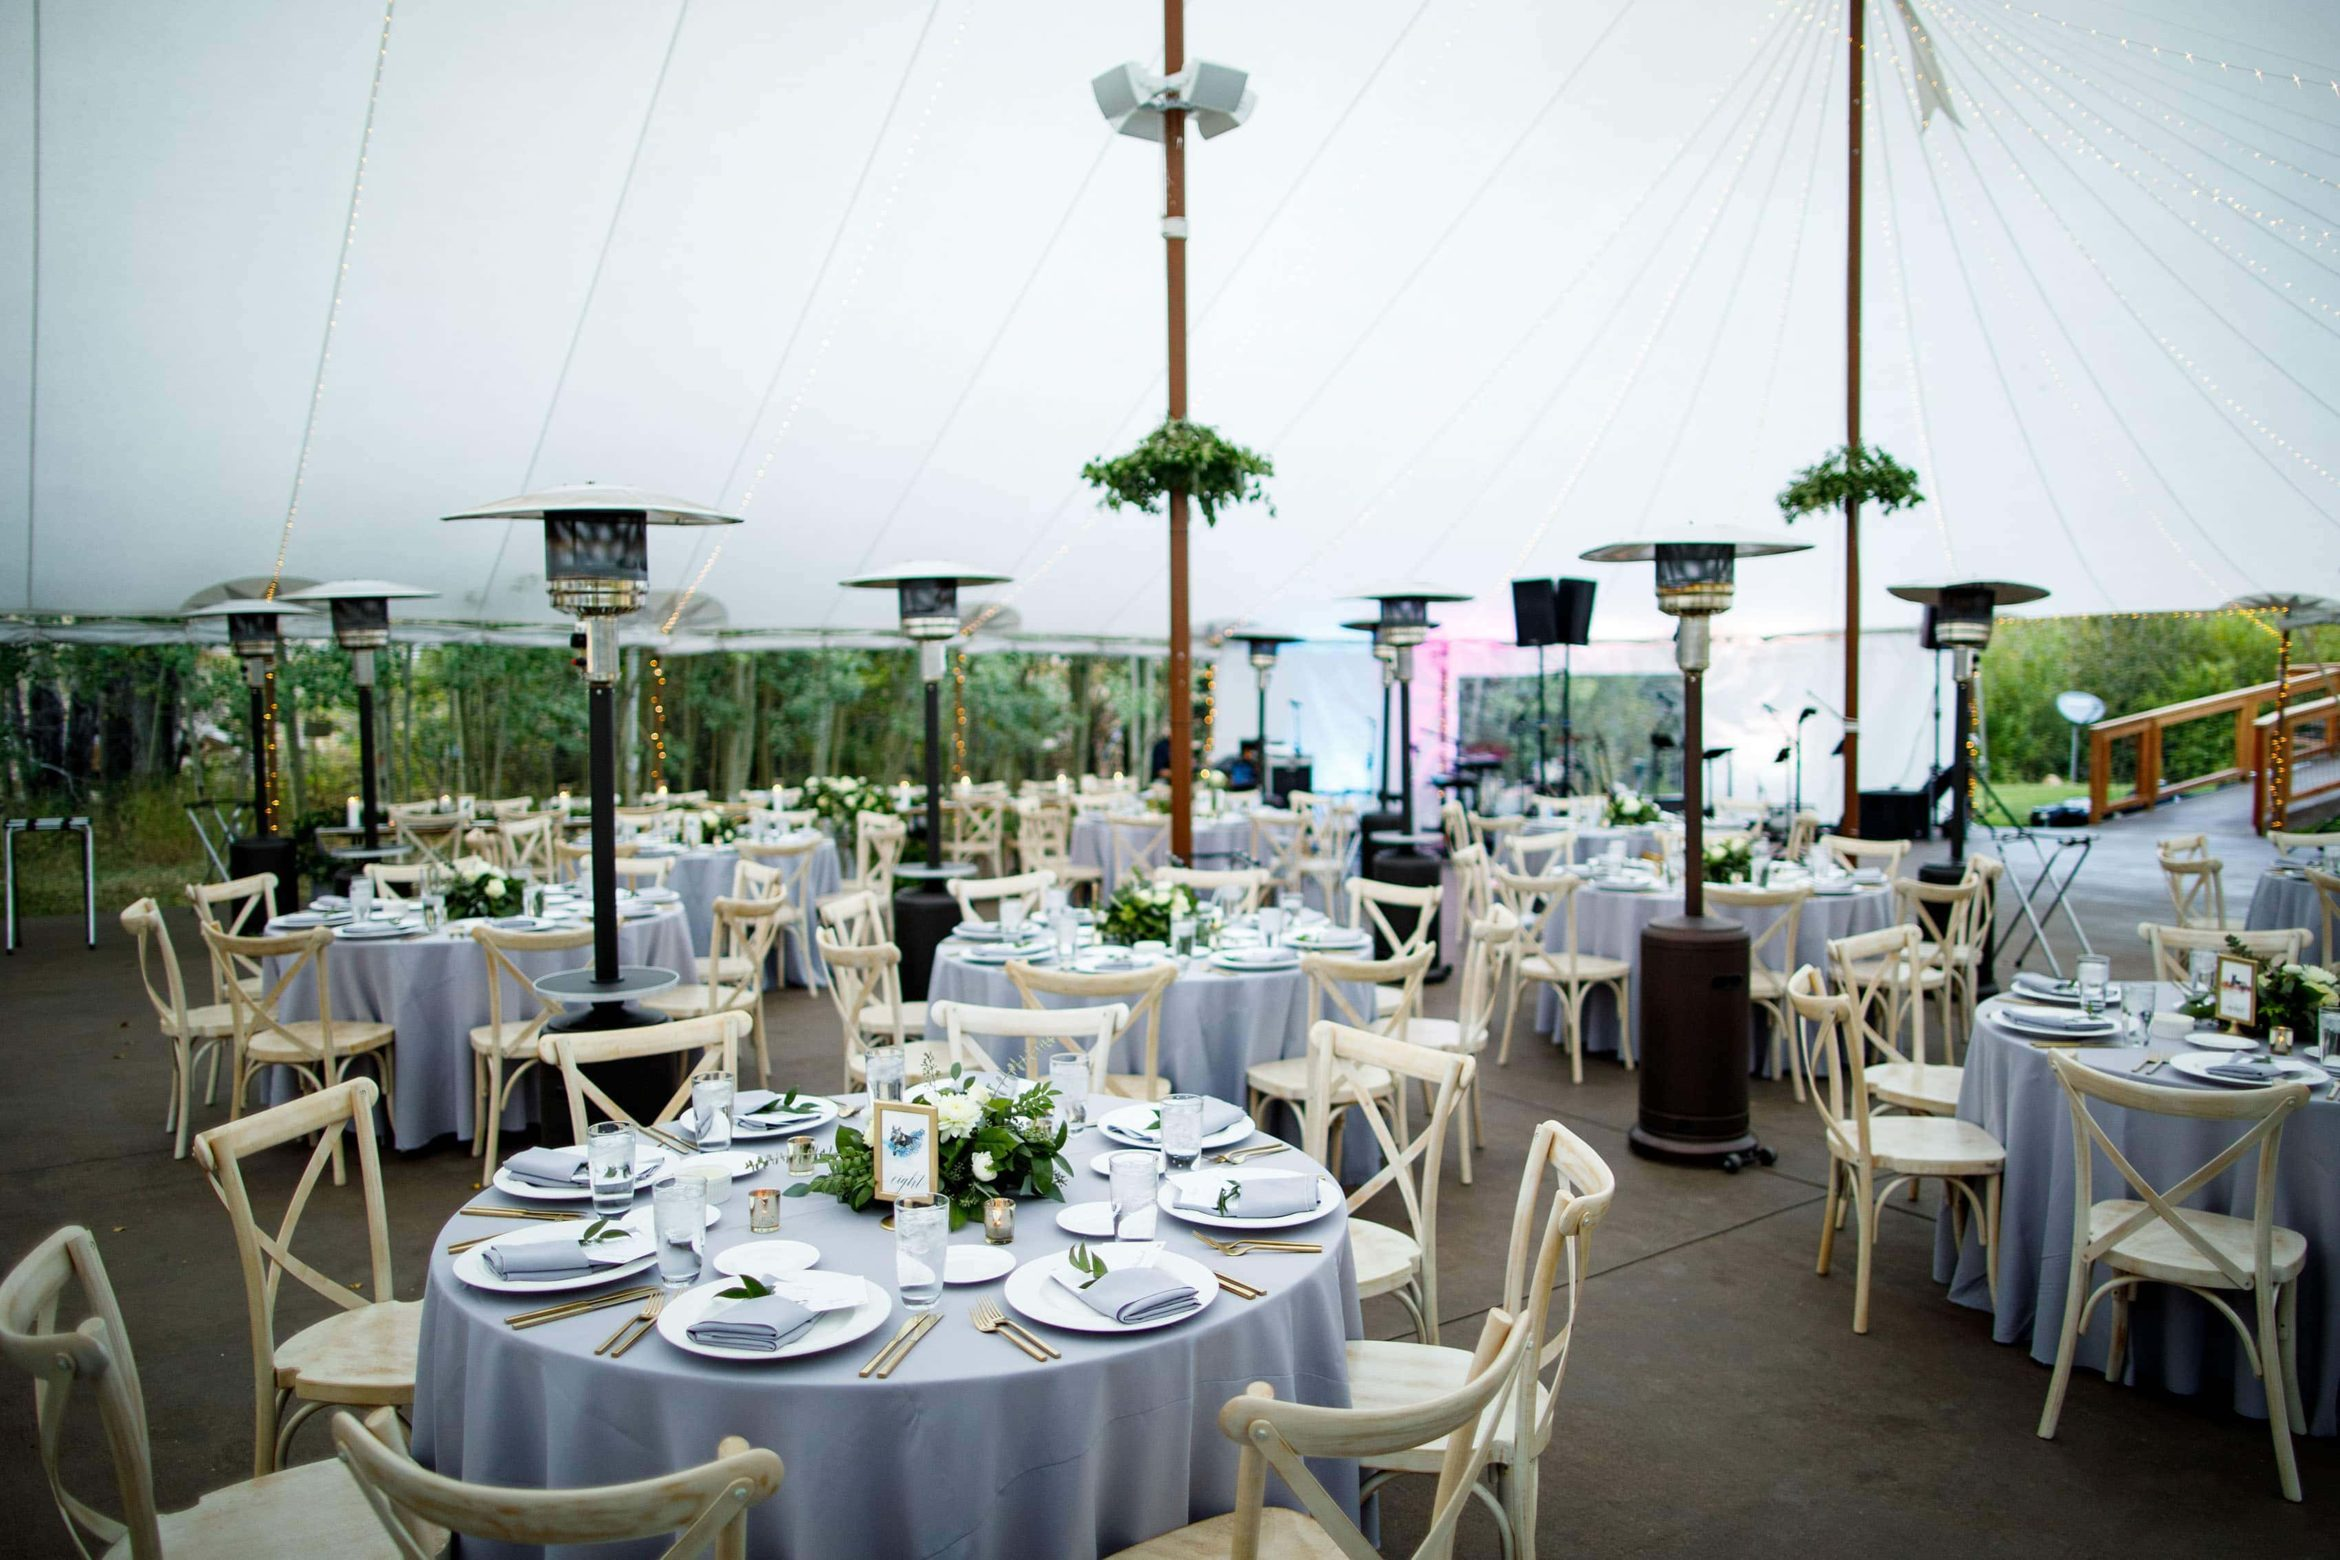 Table setup in the tent for a wedding at Blackstone Rivers Ranch